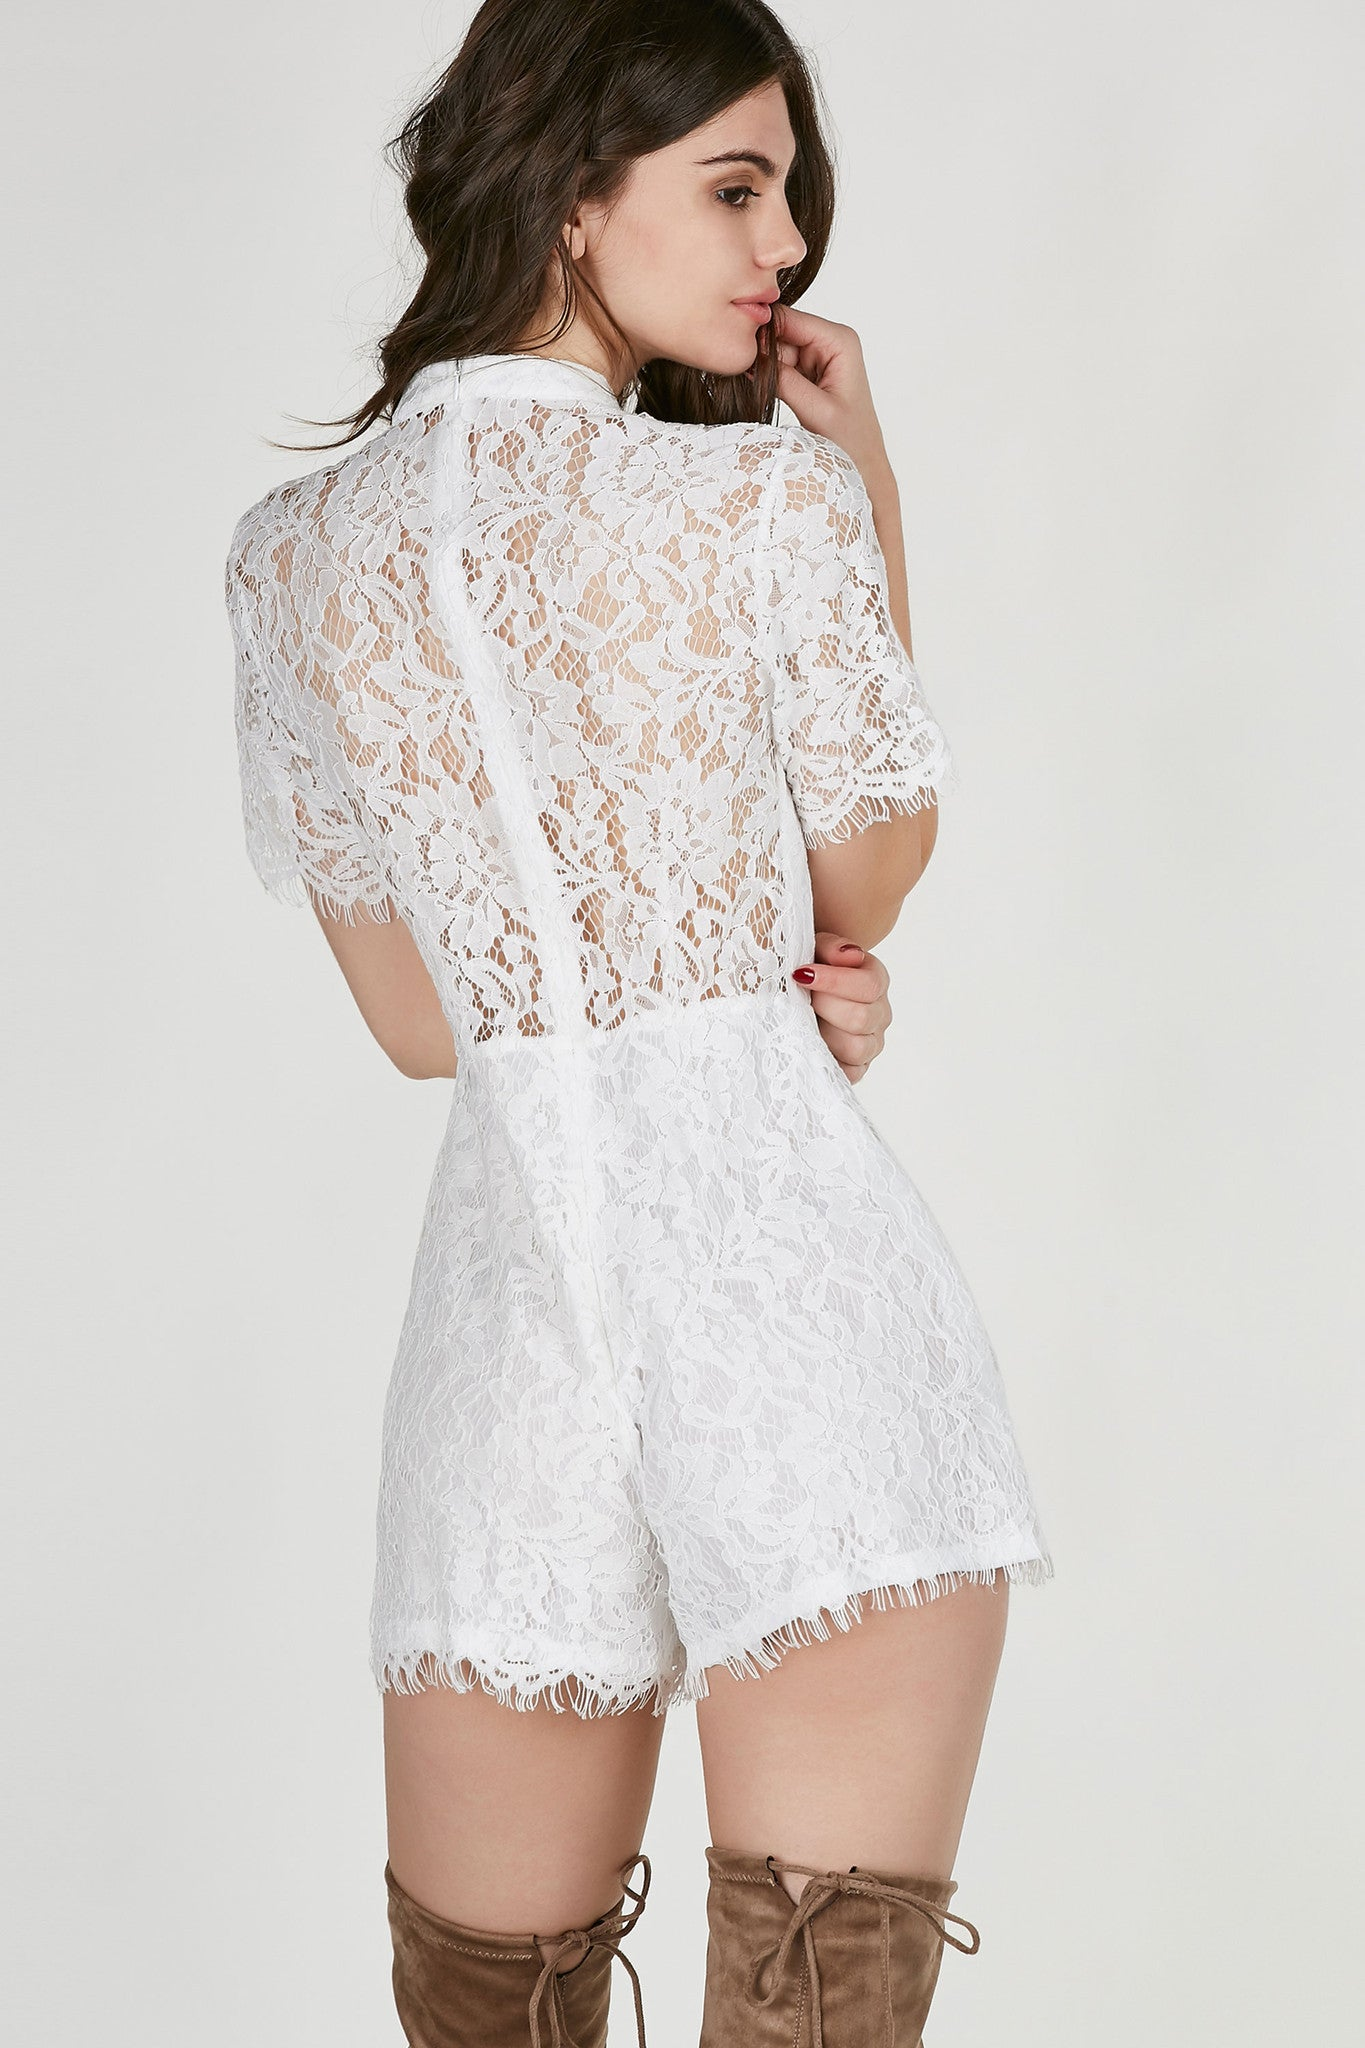 Mock neck short sleeve romper with delicate lace finish all around. Lined with hidden back zip closure.